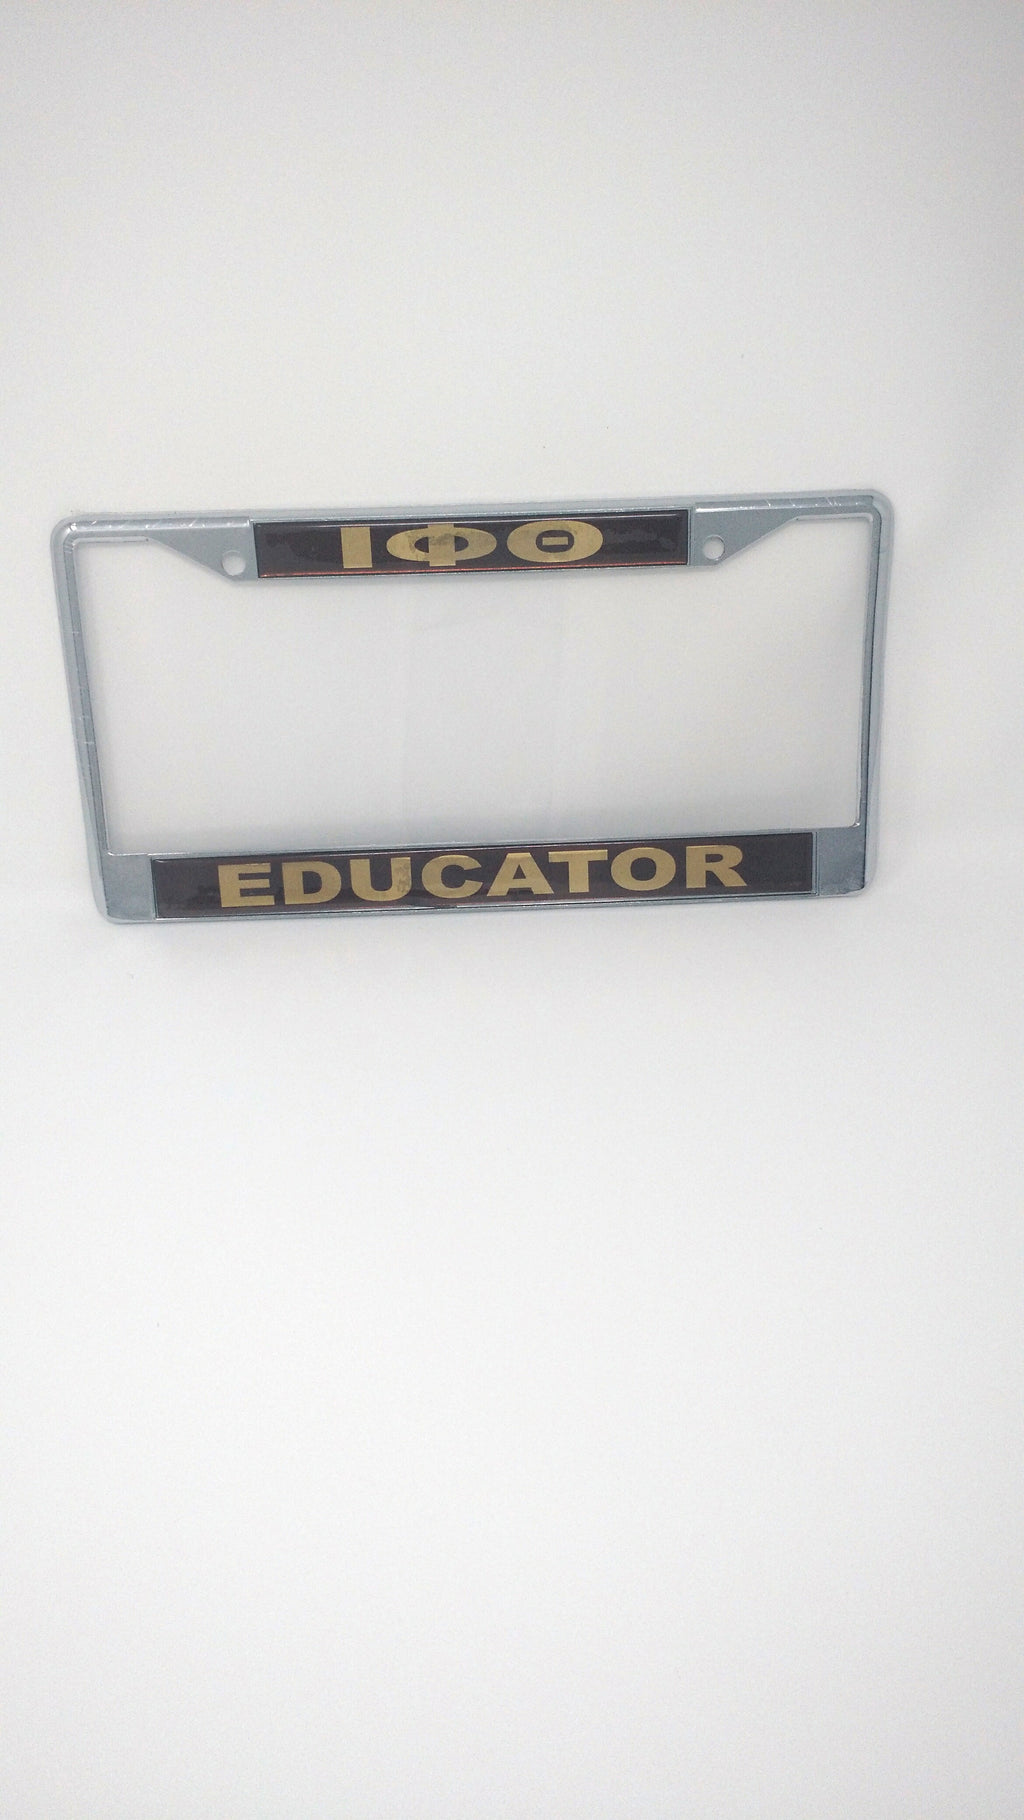 Iota Phi Theta Educator License Plate Frame